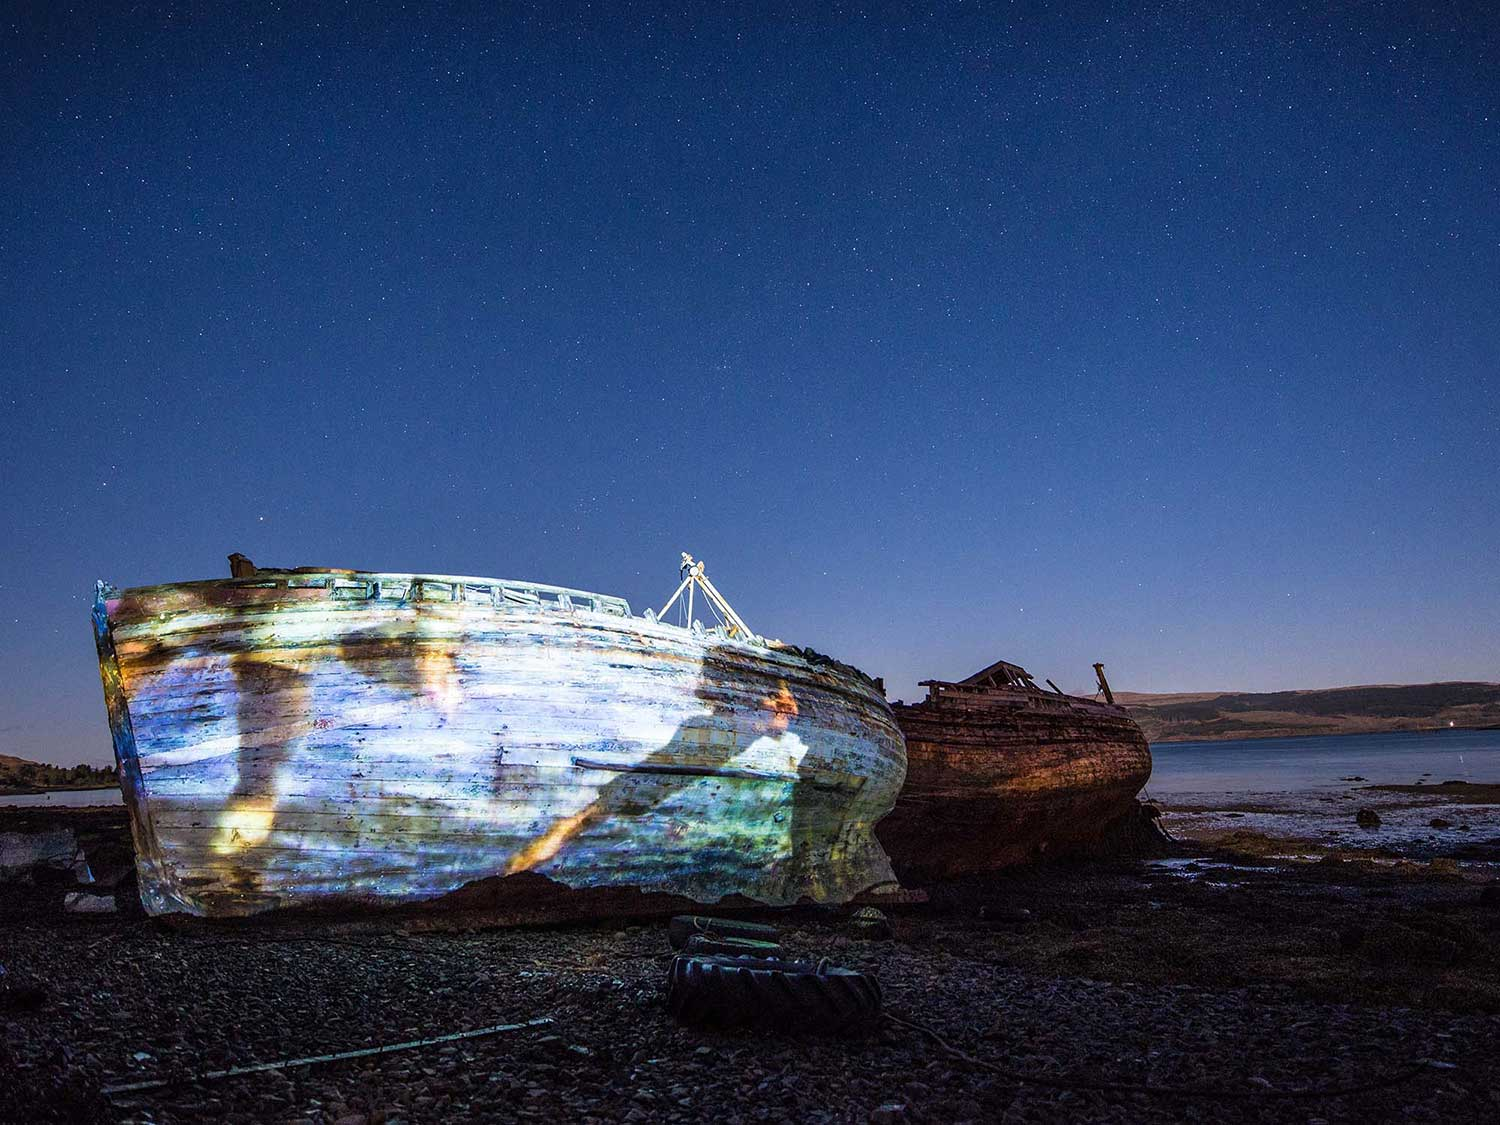 Calmac timelapse marketing film, Guerrilla Projections on abandoned boats, Mull